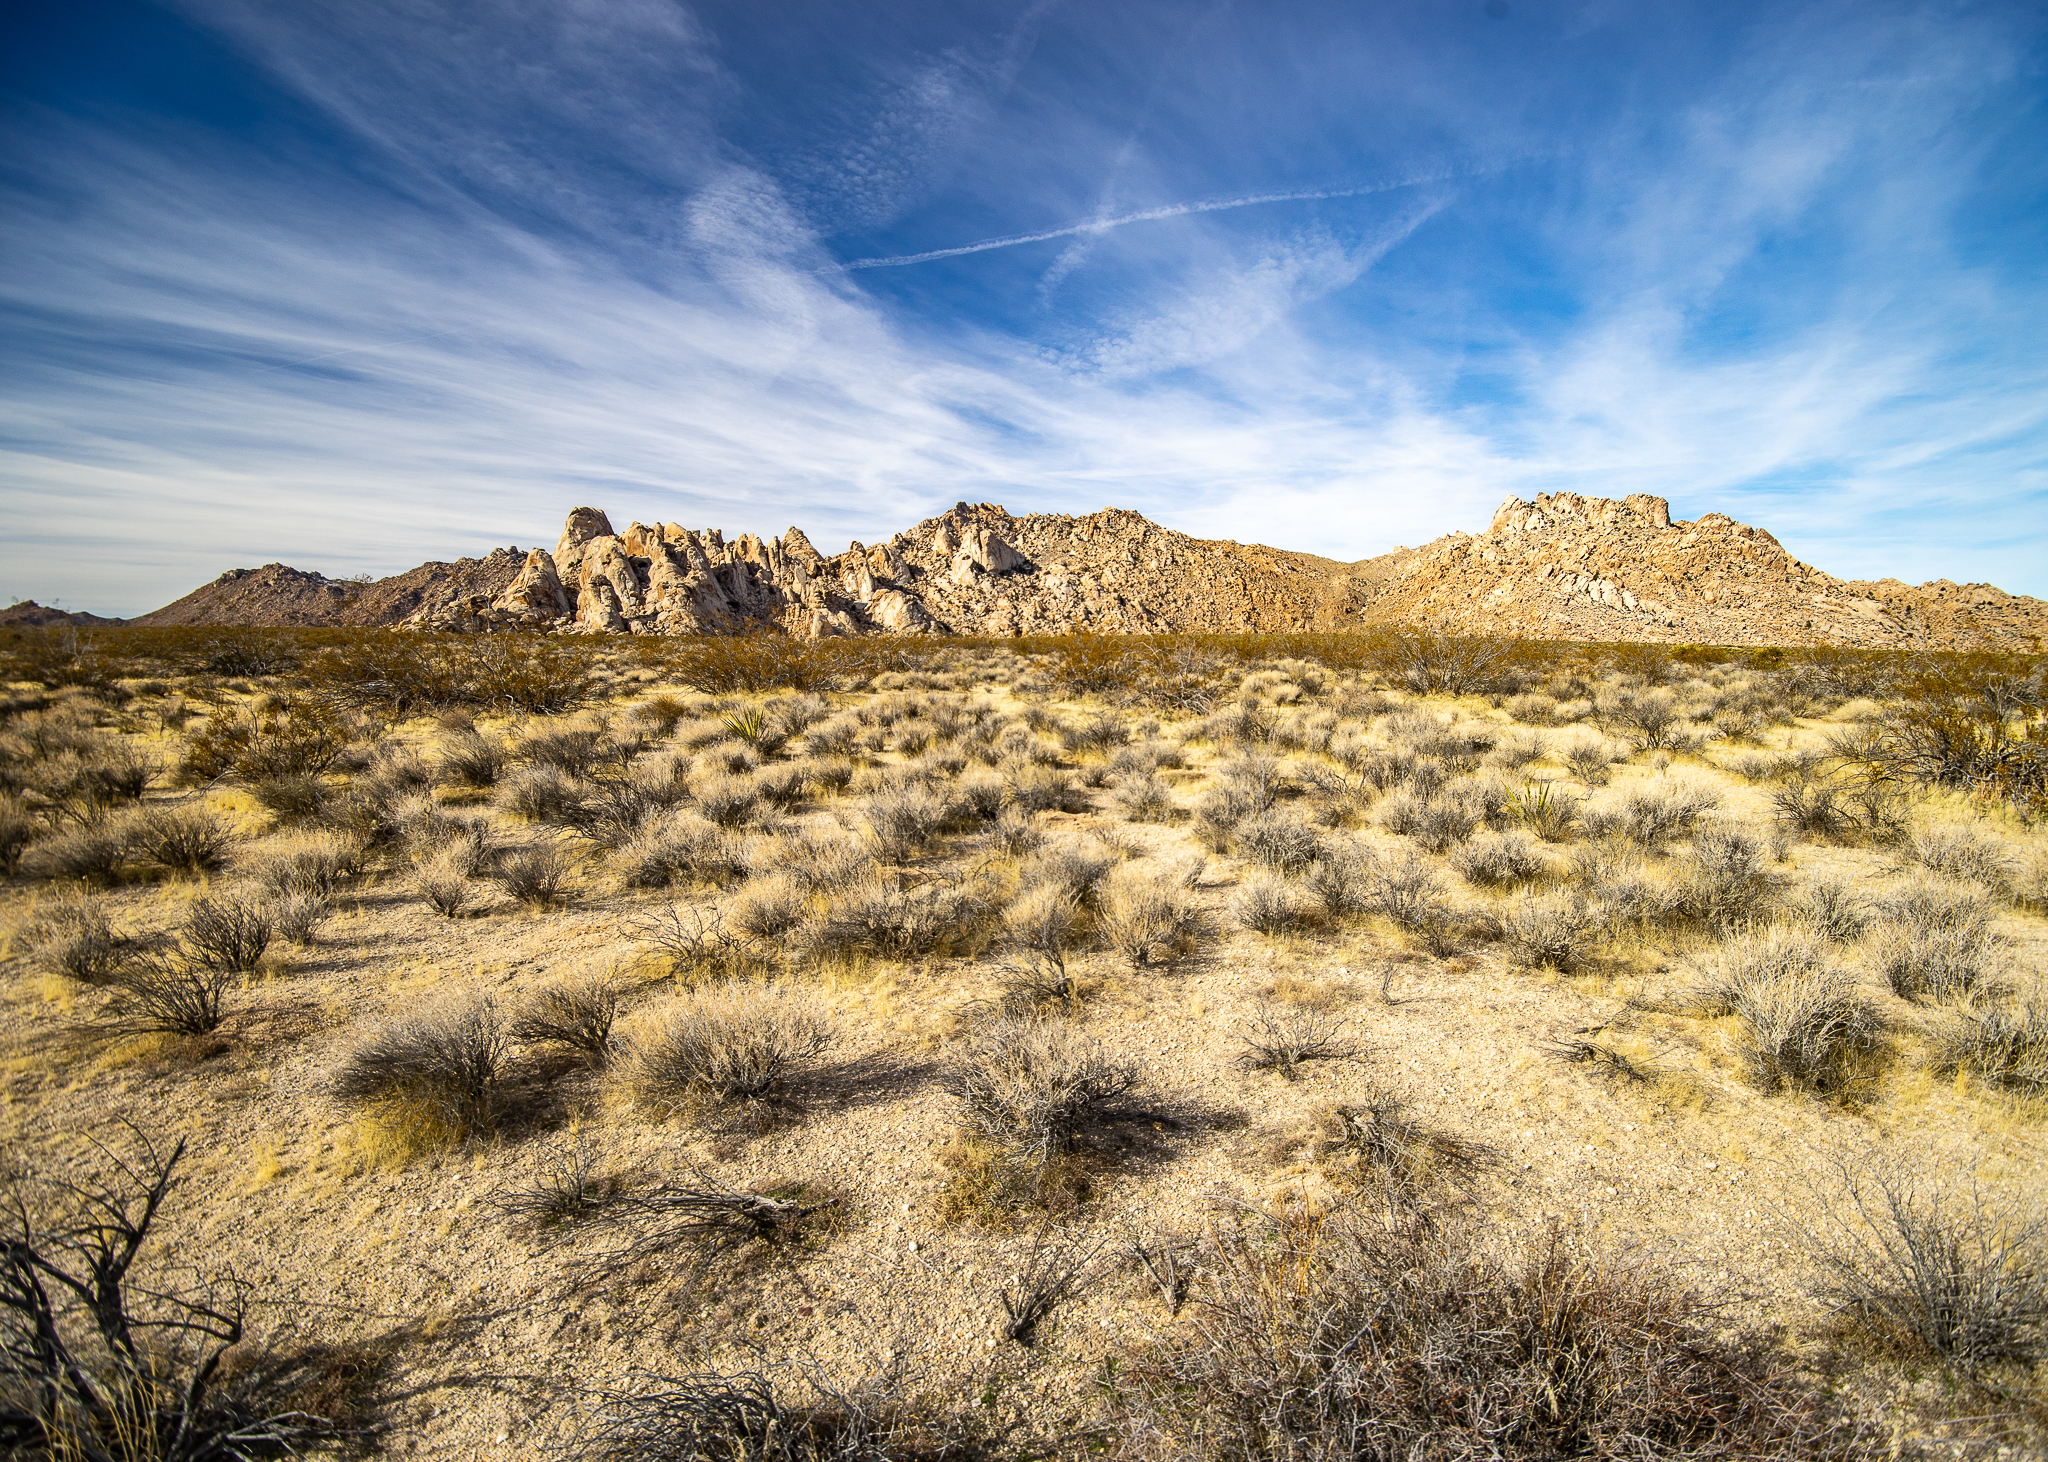 Desert and mountains with blue sky